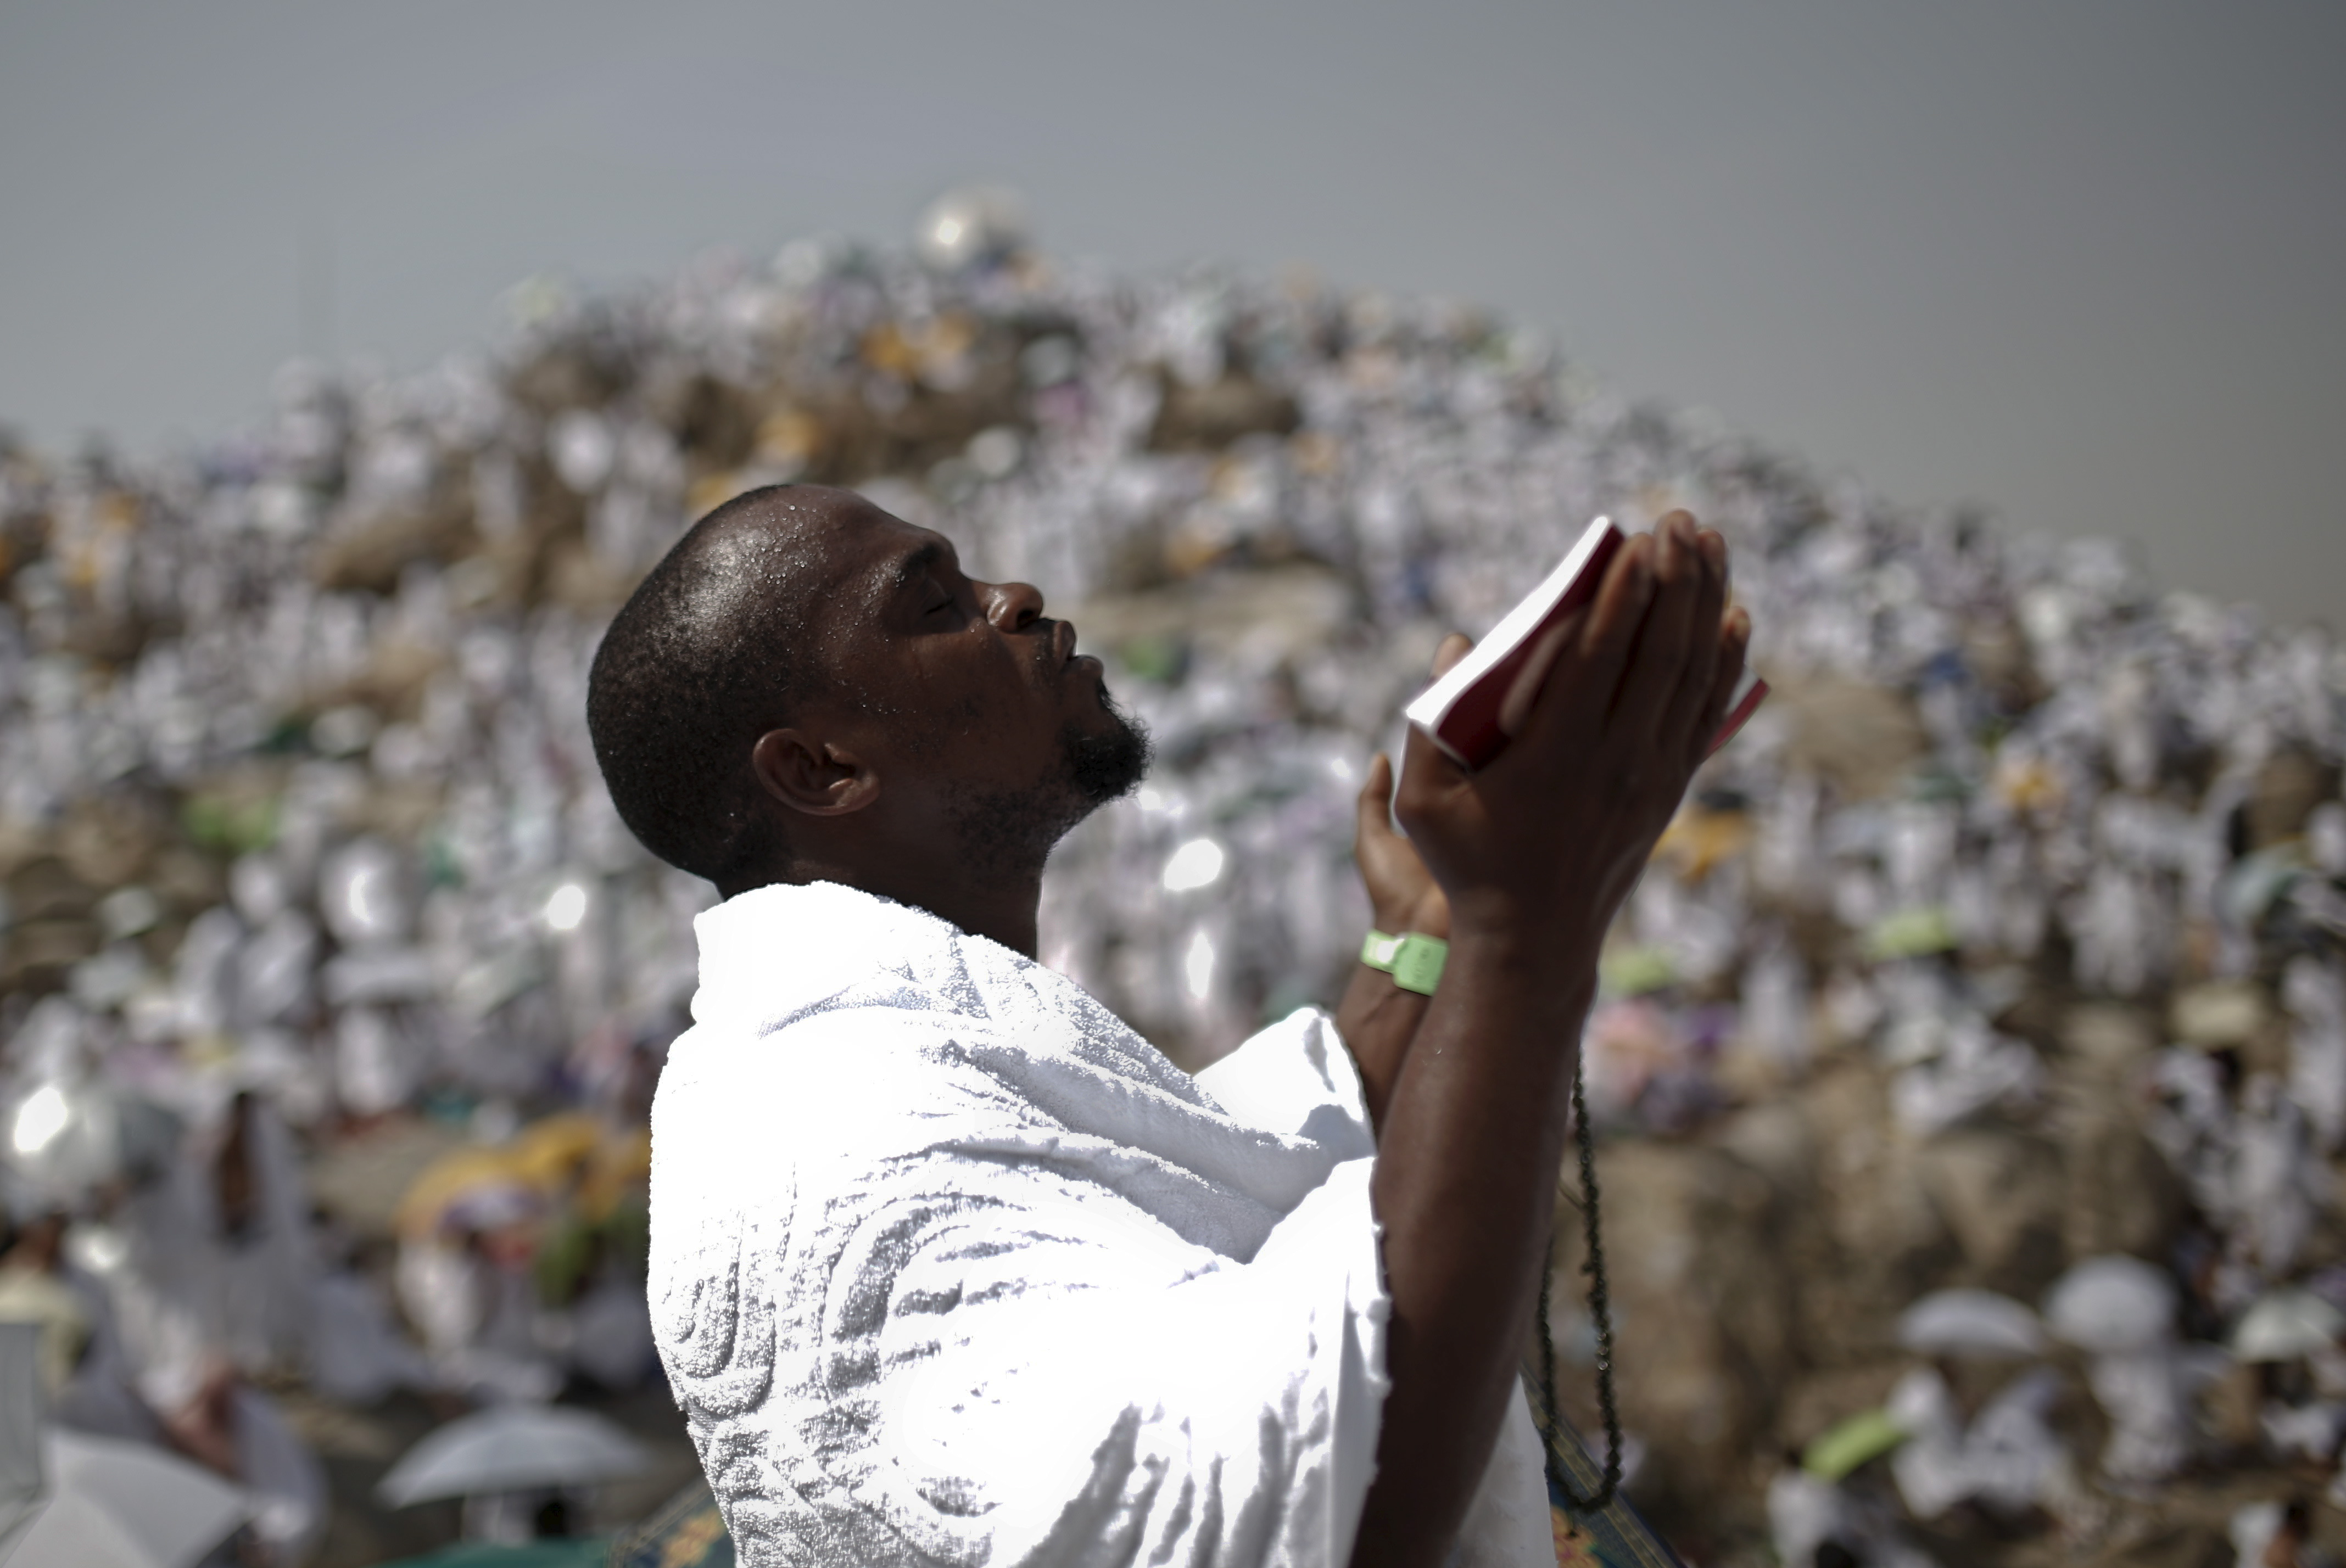 A Muslim pilgrim prays on Mount Mercy on the plains of Arafat in Saudi Arabia during the annual hajj pilgrimage, outside the holy city of Mecca on Sept. 23. Photo by Ahmad Masood/Reuters